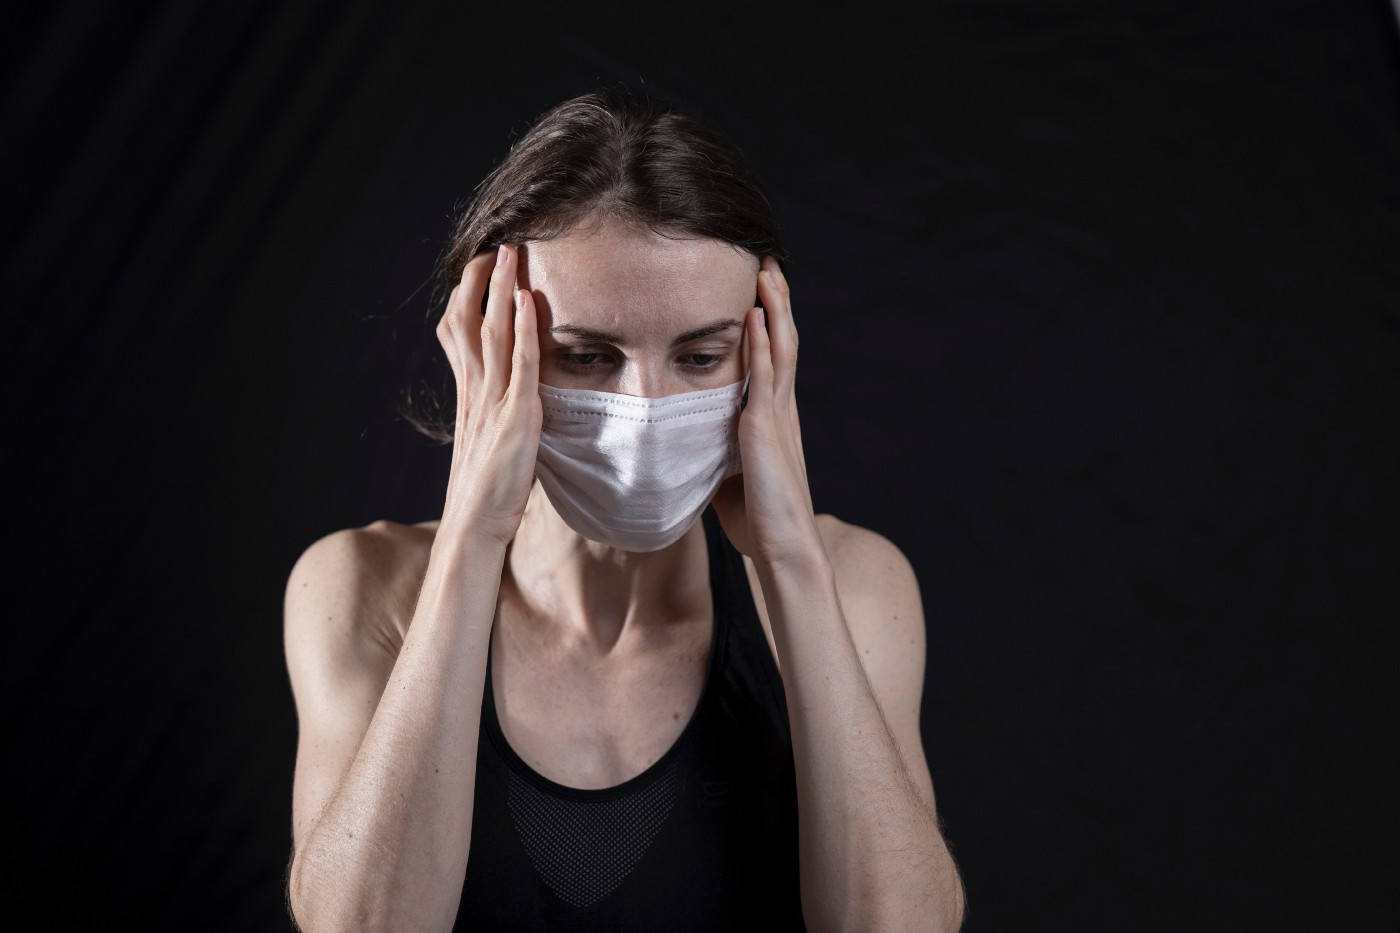 Woman in mask gripping her head in front of a black background.